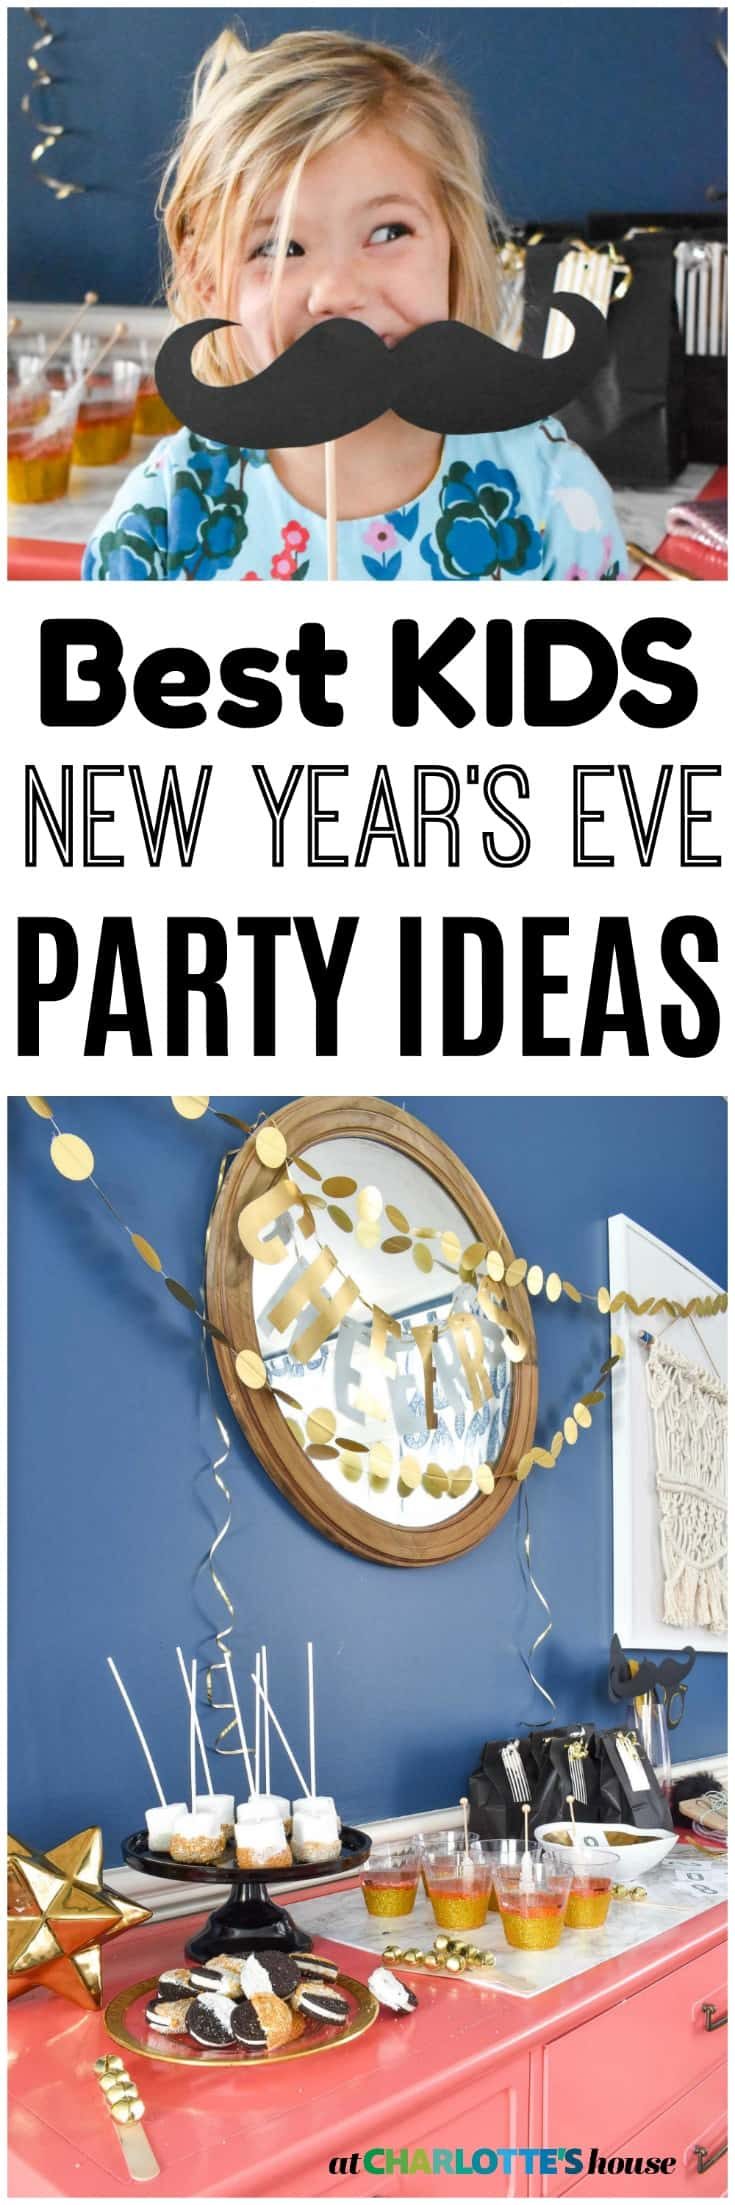 fun and quick activities, decor and snacks for a kids new year's eve party!